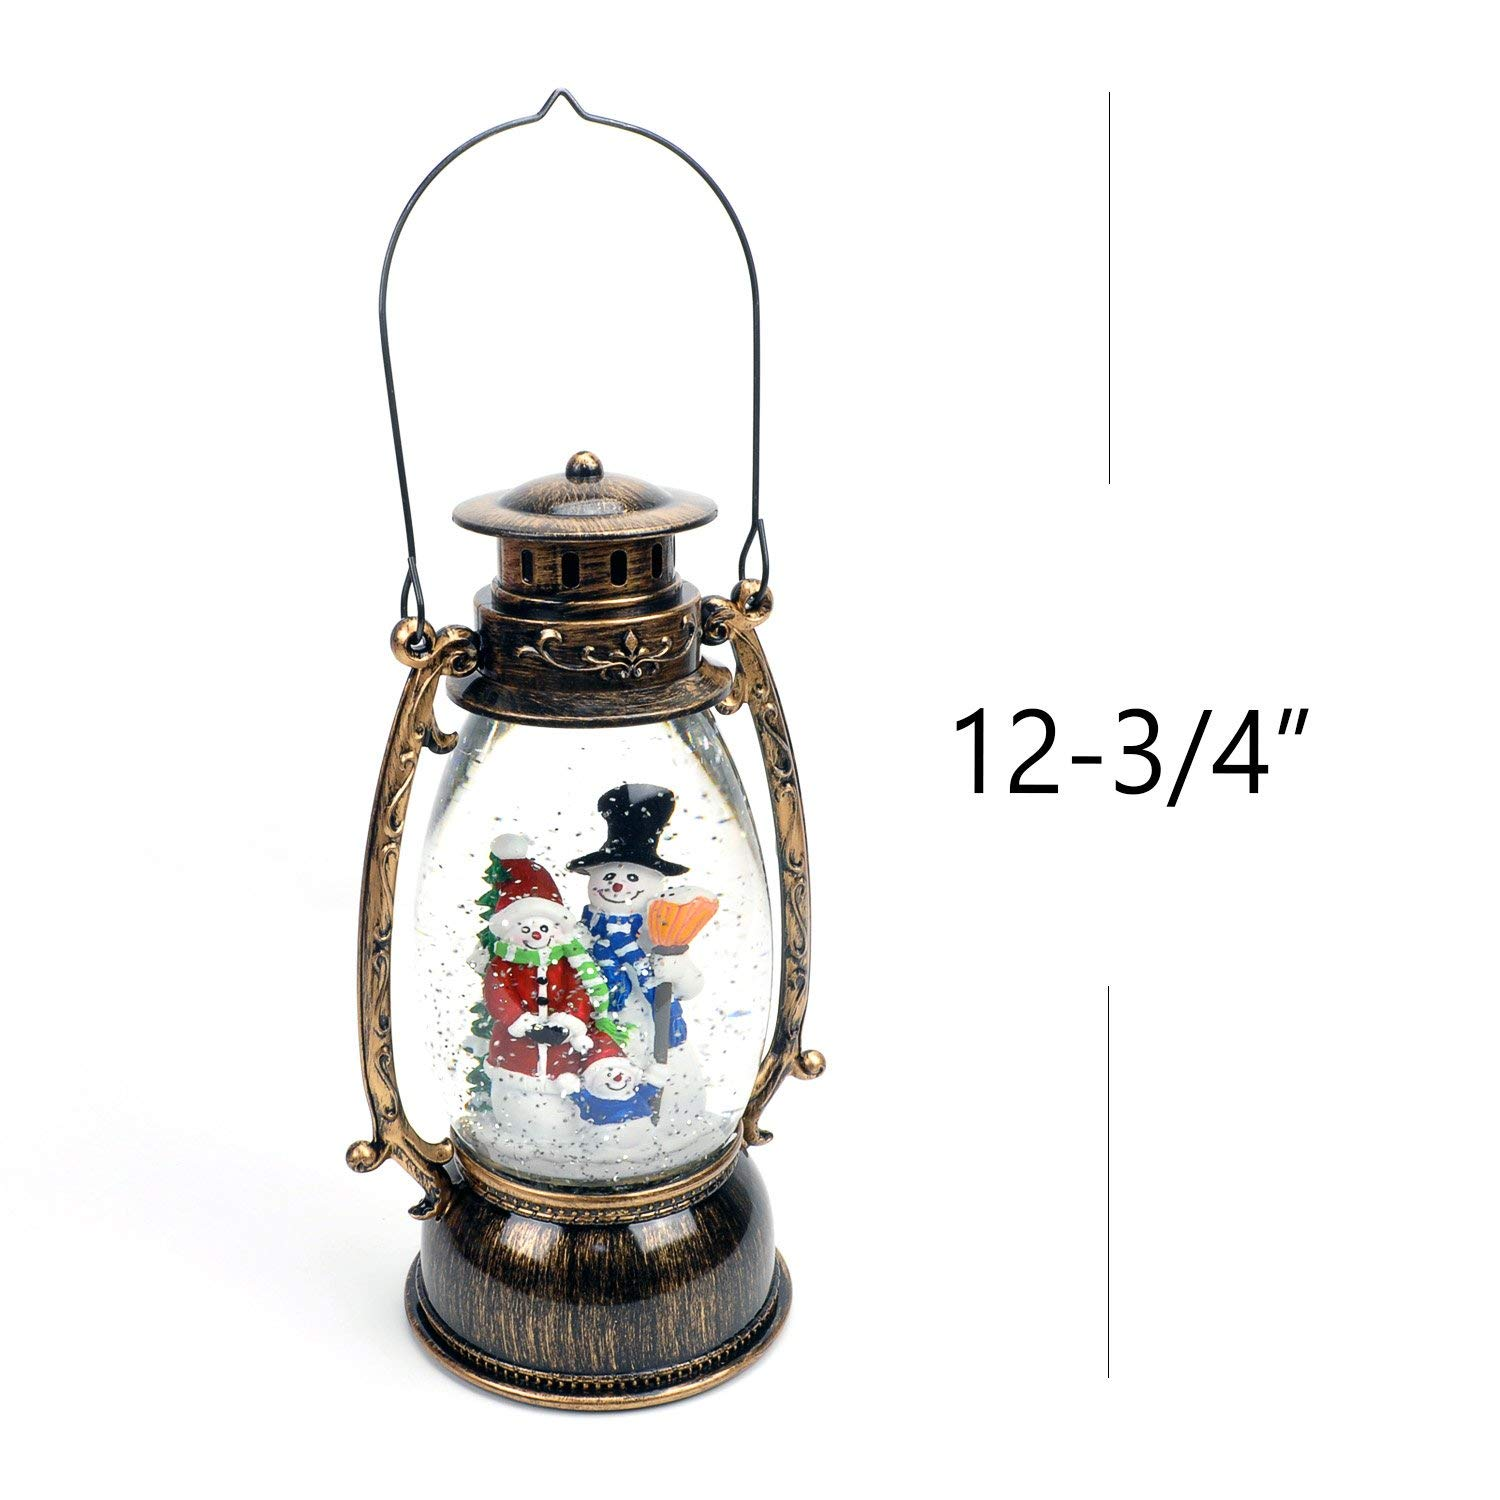 Christmas Snow Globes Australia.Evelyne Gmt 10314 Snowman Family Christmas Snow Globe Led Lighted Lantern Battery Operated Swirling Glitter Water For Holiday Season Home Decor